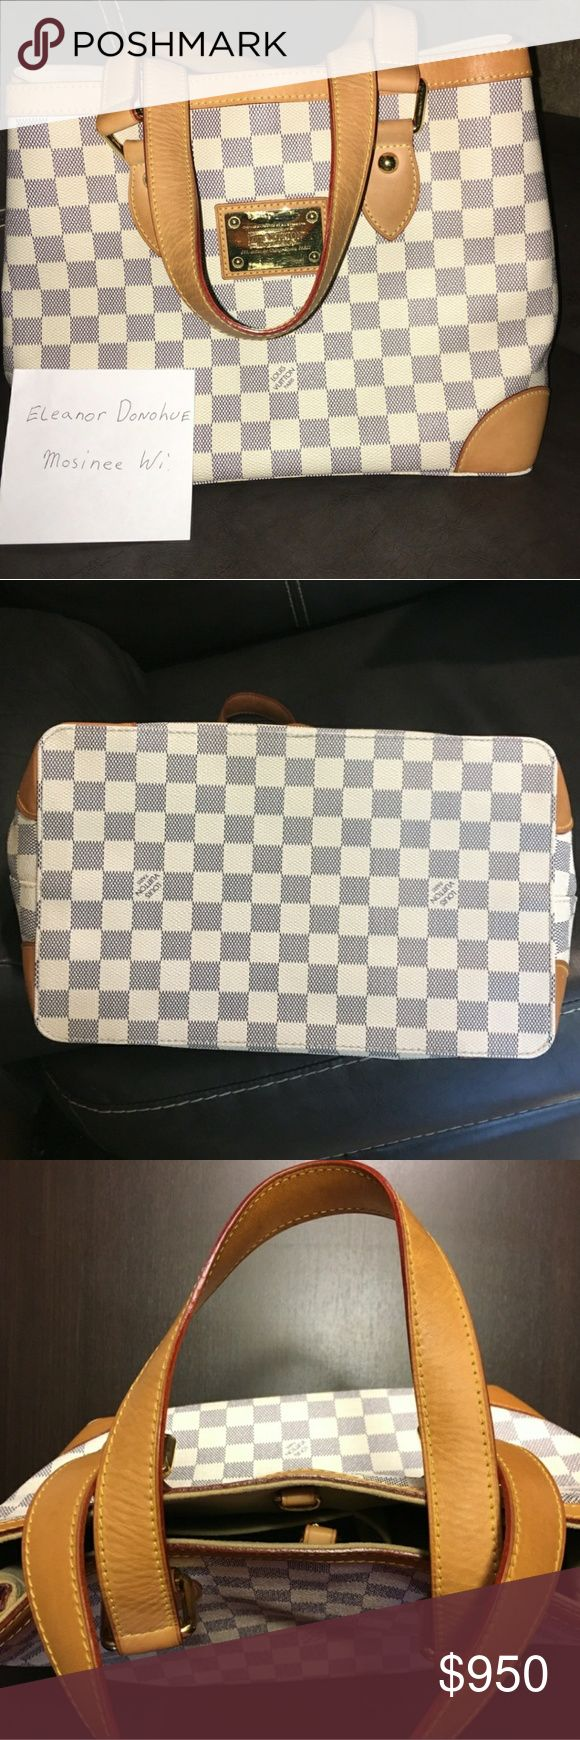 Louis Vuitton hampstead shoulder purse pm Authentic louis vuitton hampstead pm shoulder purse white checkered  This purse is my mothers she only used a few times ,and is very clean so its in perfect condition there r no signs of wear no stains no smells no marks on the corners  The inside has no marks or stain its clean  There r a very scratches on the gold plate Louis Vuitton Bags Shoulder Bags